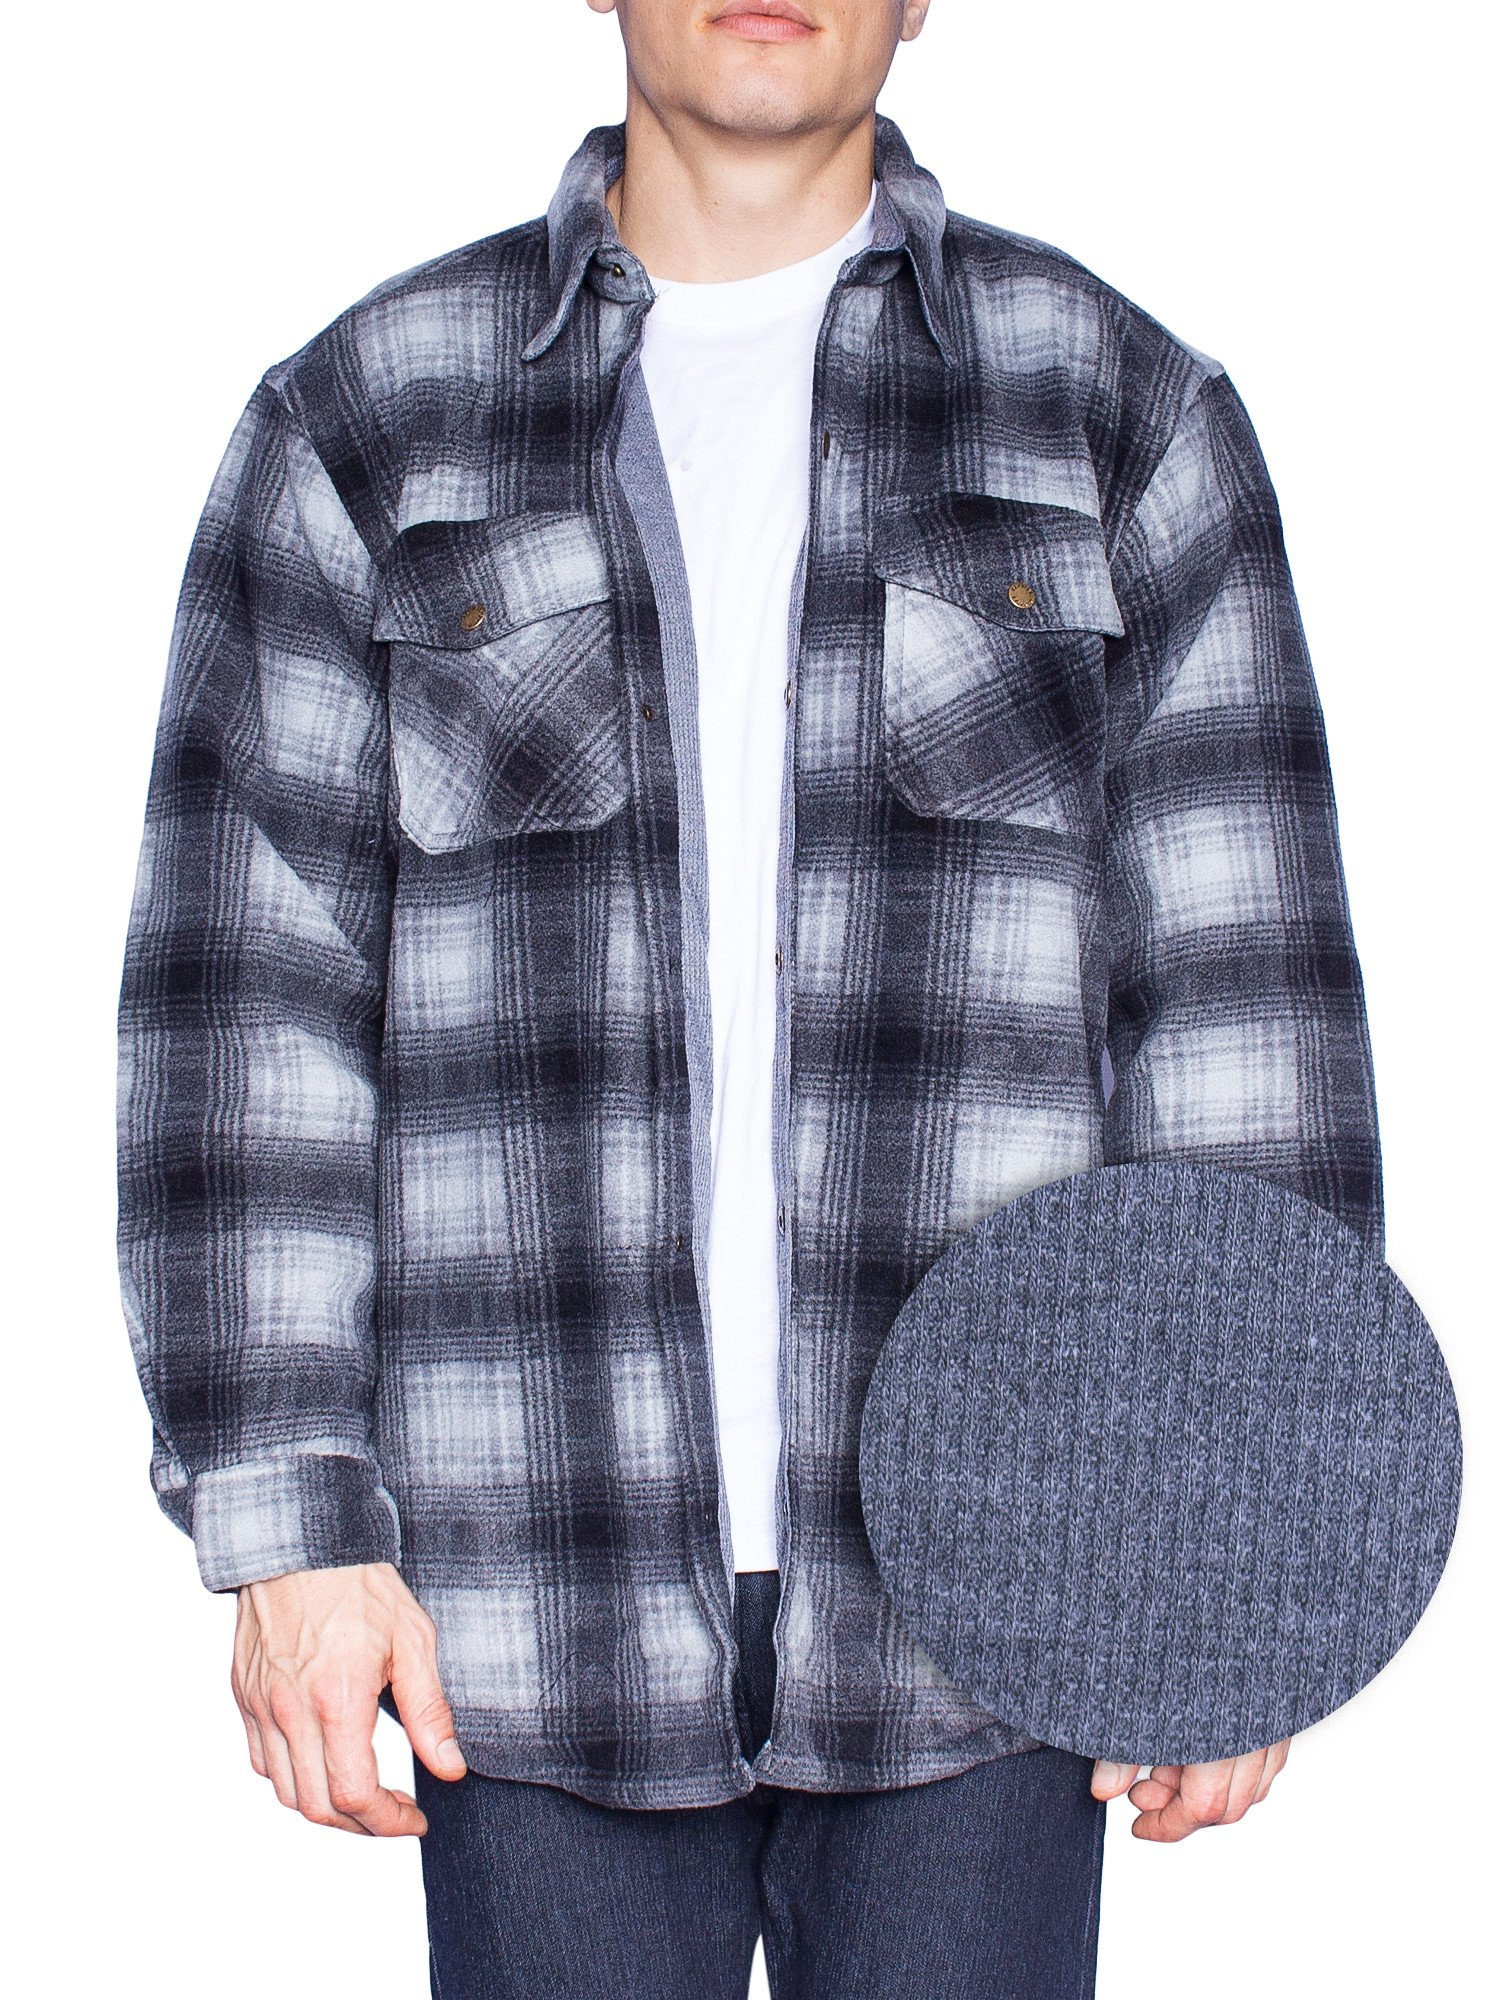 MAXXSEL Flannel Jacket for Mens Big & Tall Thermal Lined Button Down Shirt-Black/Ombre-Medium